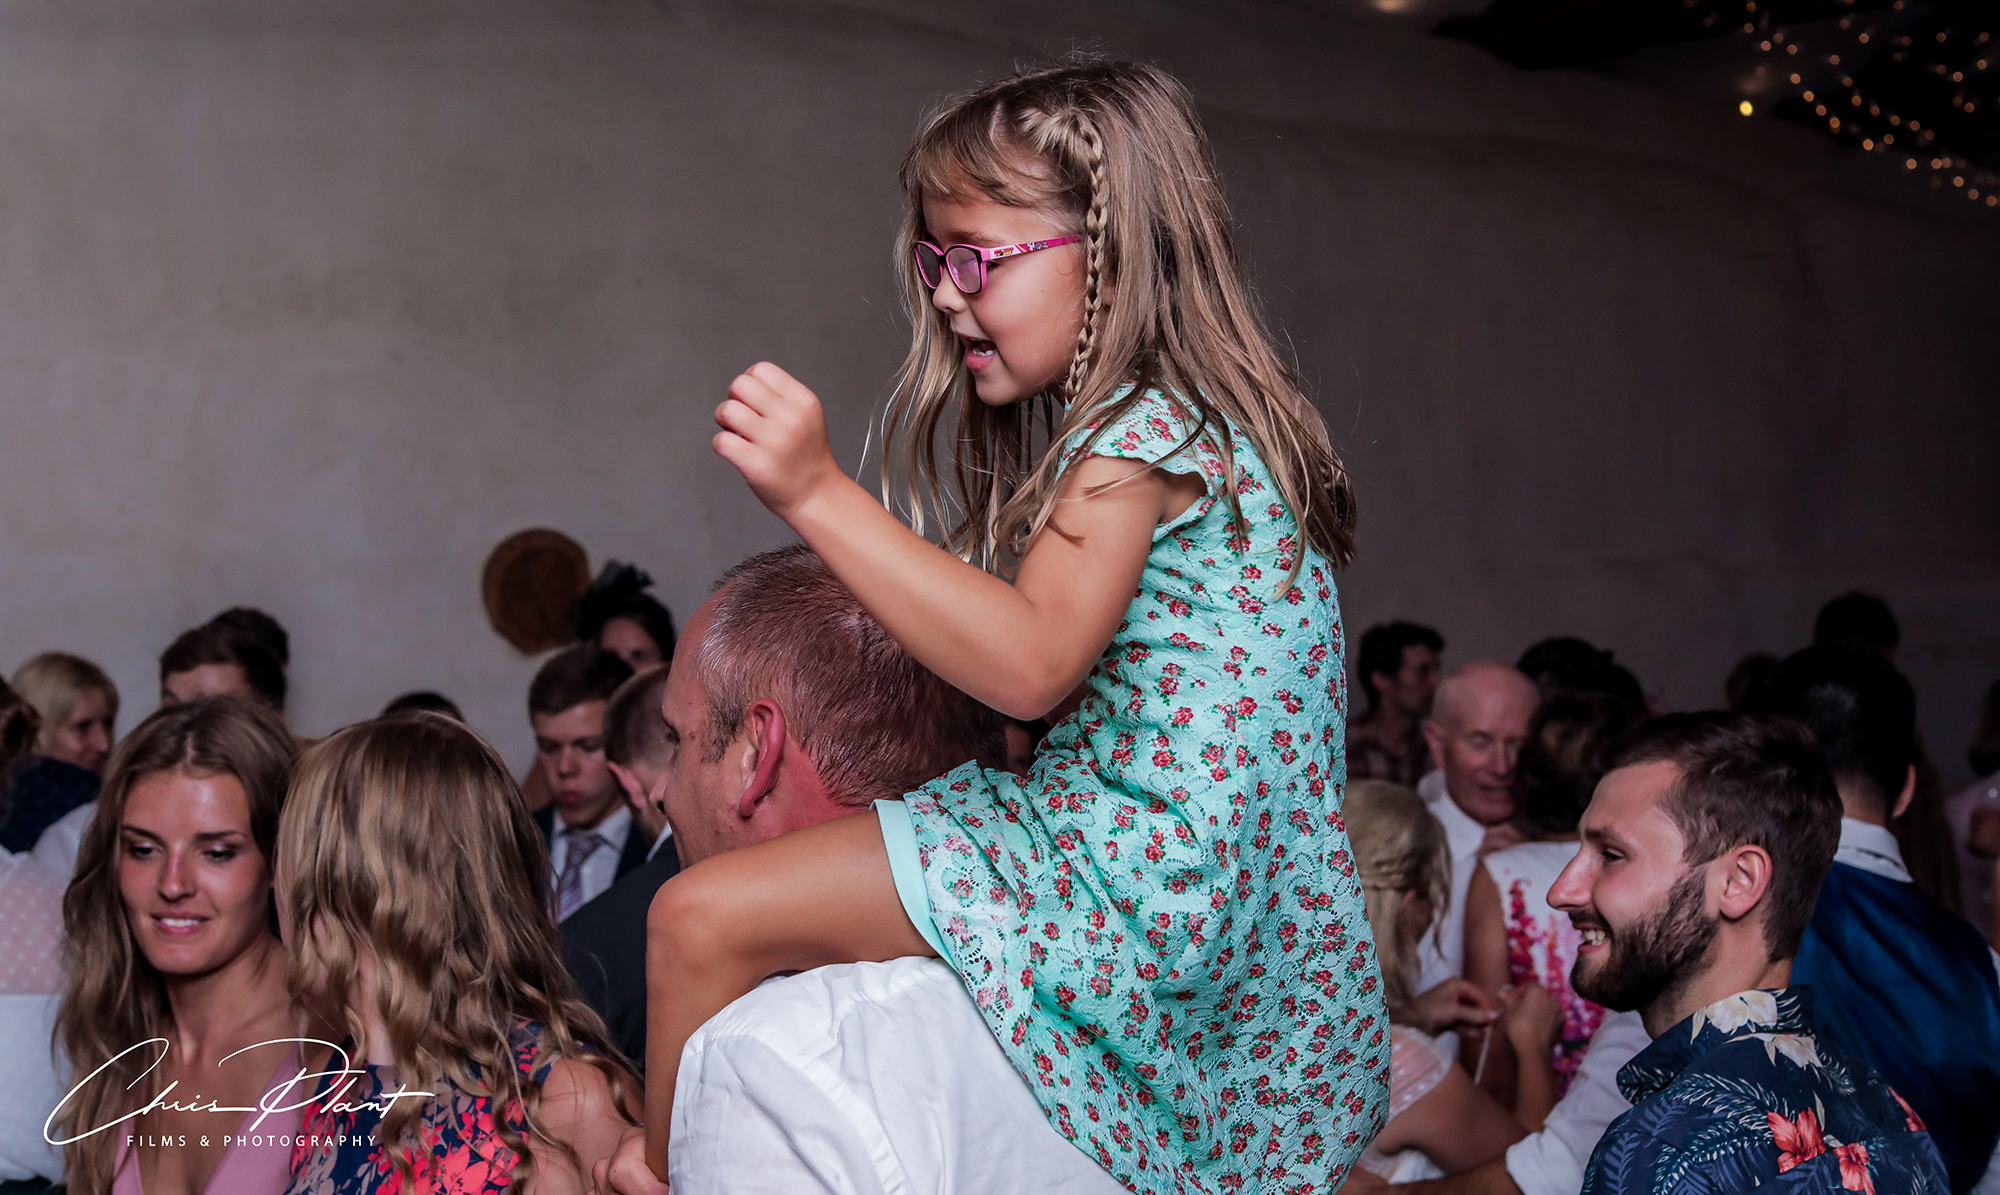 Yound girl on her dads shoulders on the packed dancefloor